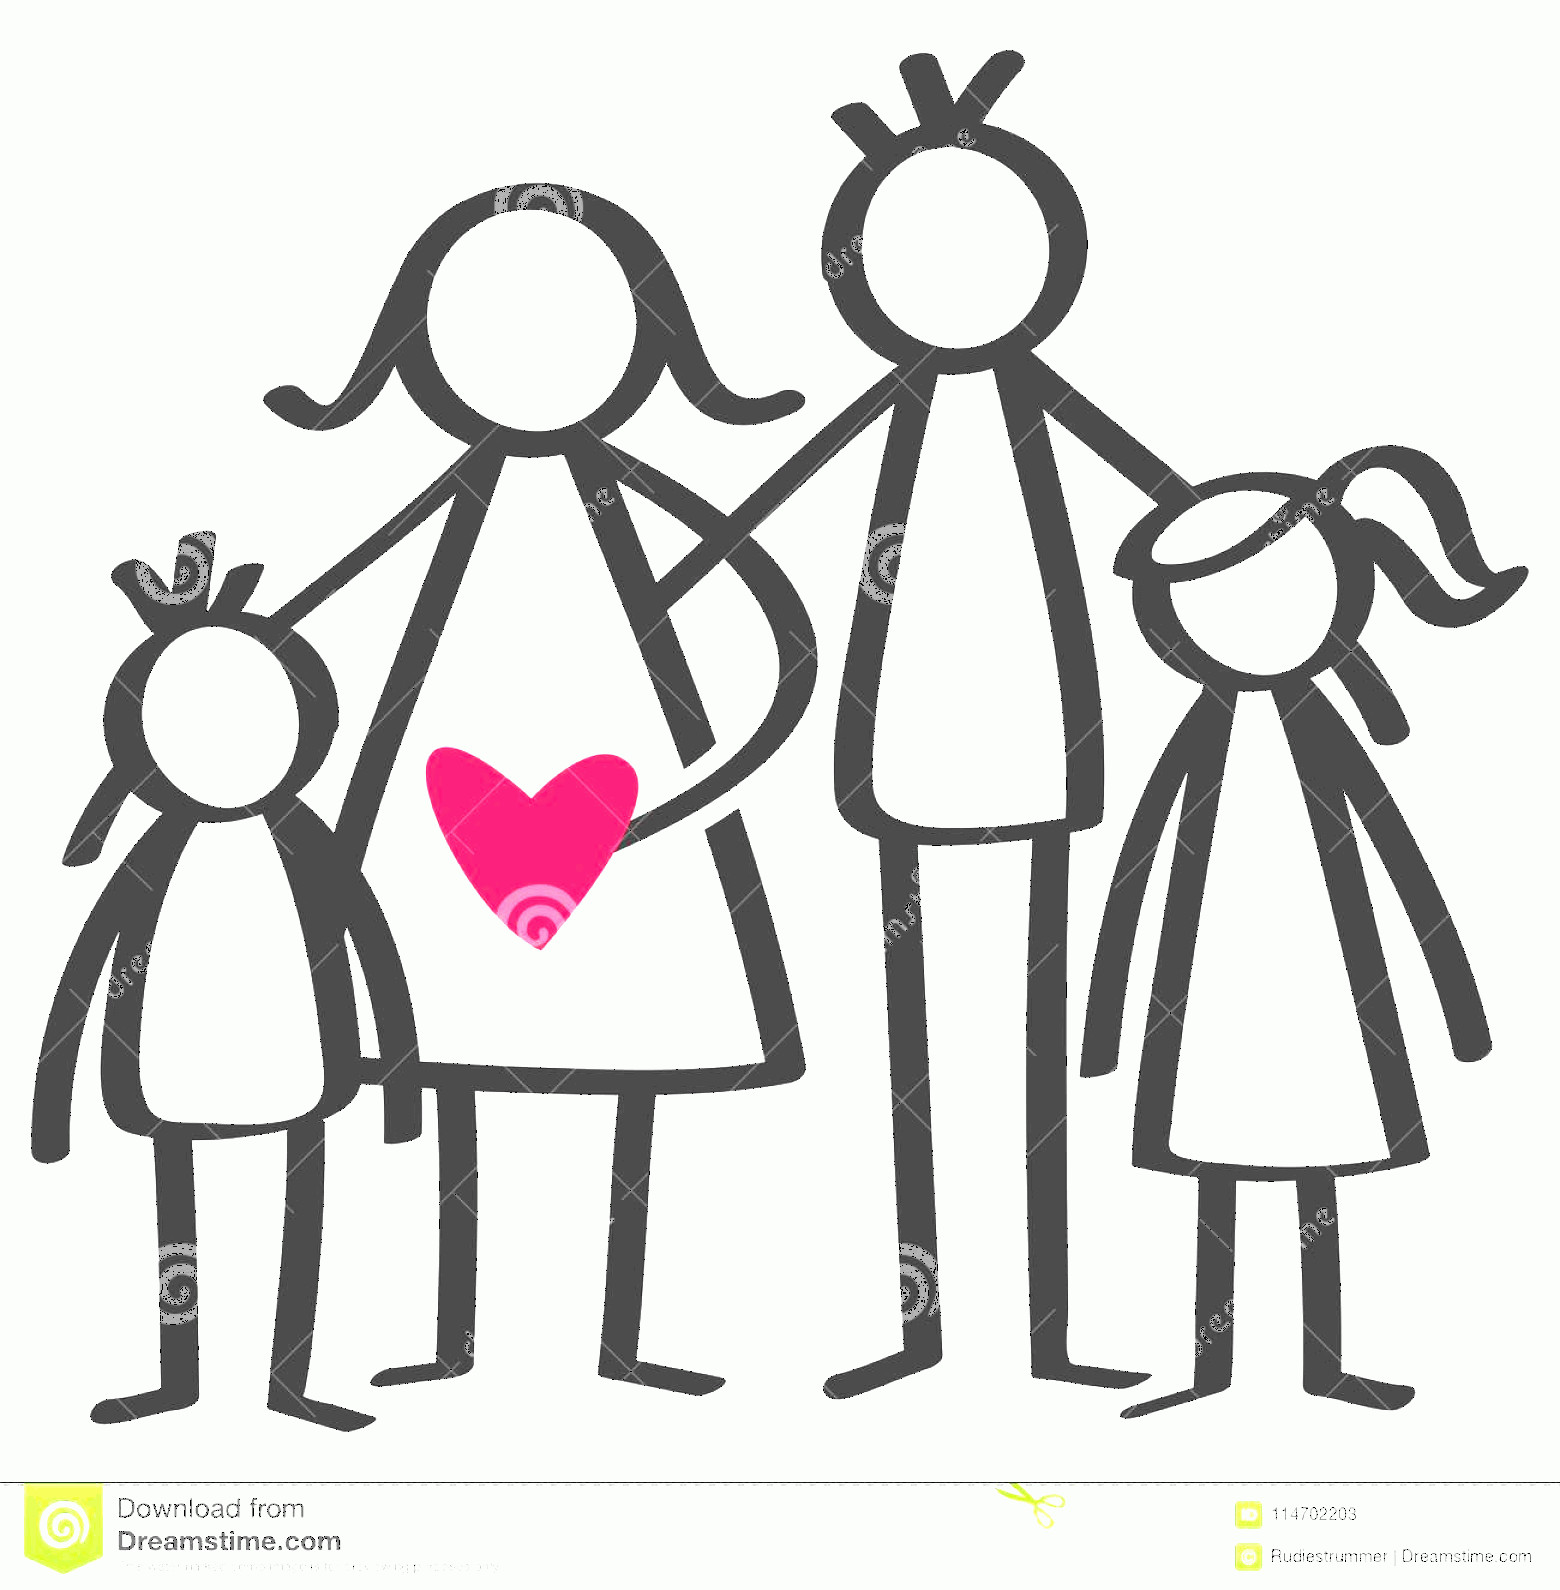 Stick Family Vector Art: Simple Stick Figures Happy Family Mother Father Son Daughter Children Red Heart Simple Stick Figures Happy Family Mother Father Image